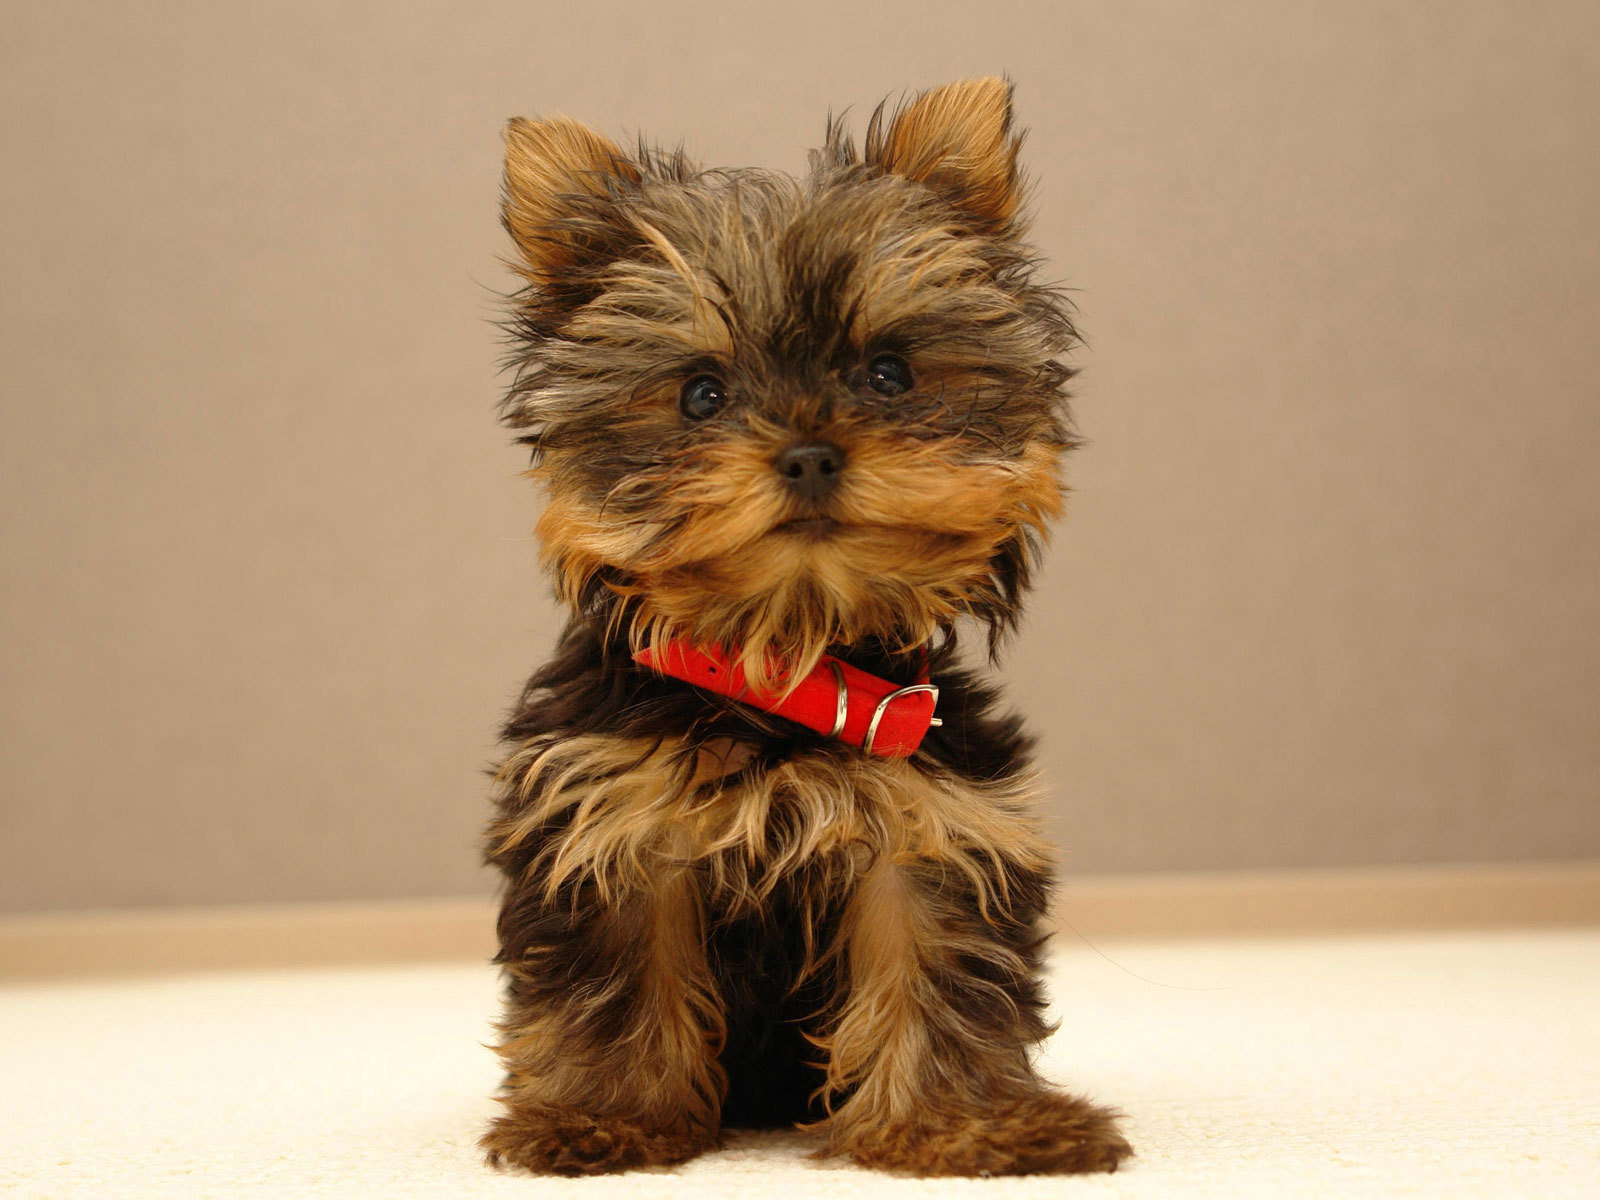 Cute puppy wallpapers Cute puppy stock photos 1600x1200